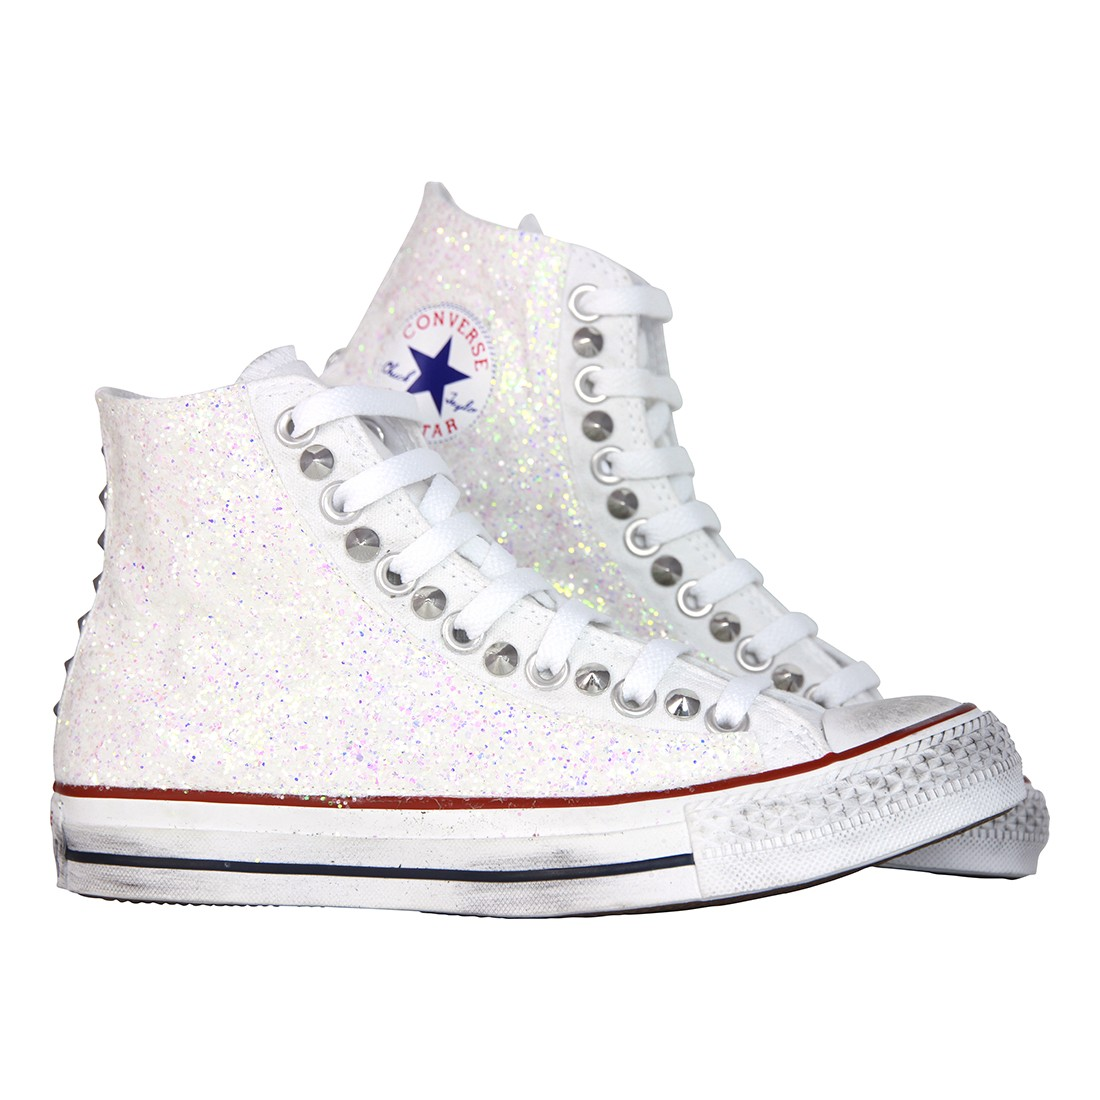 converse all star bianche borchie